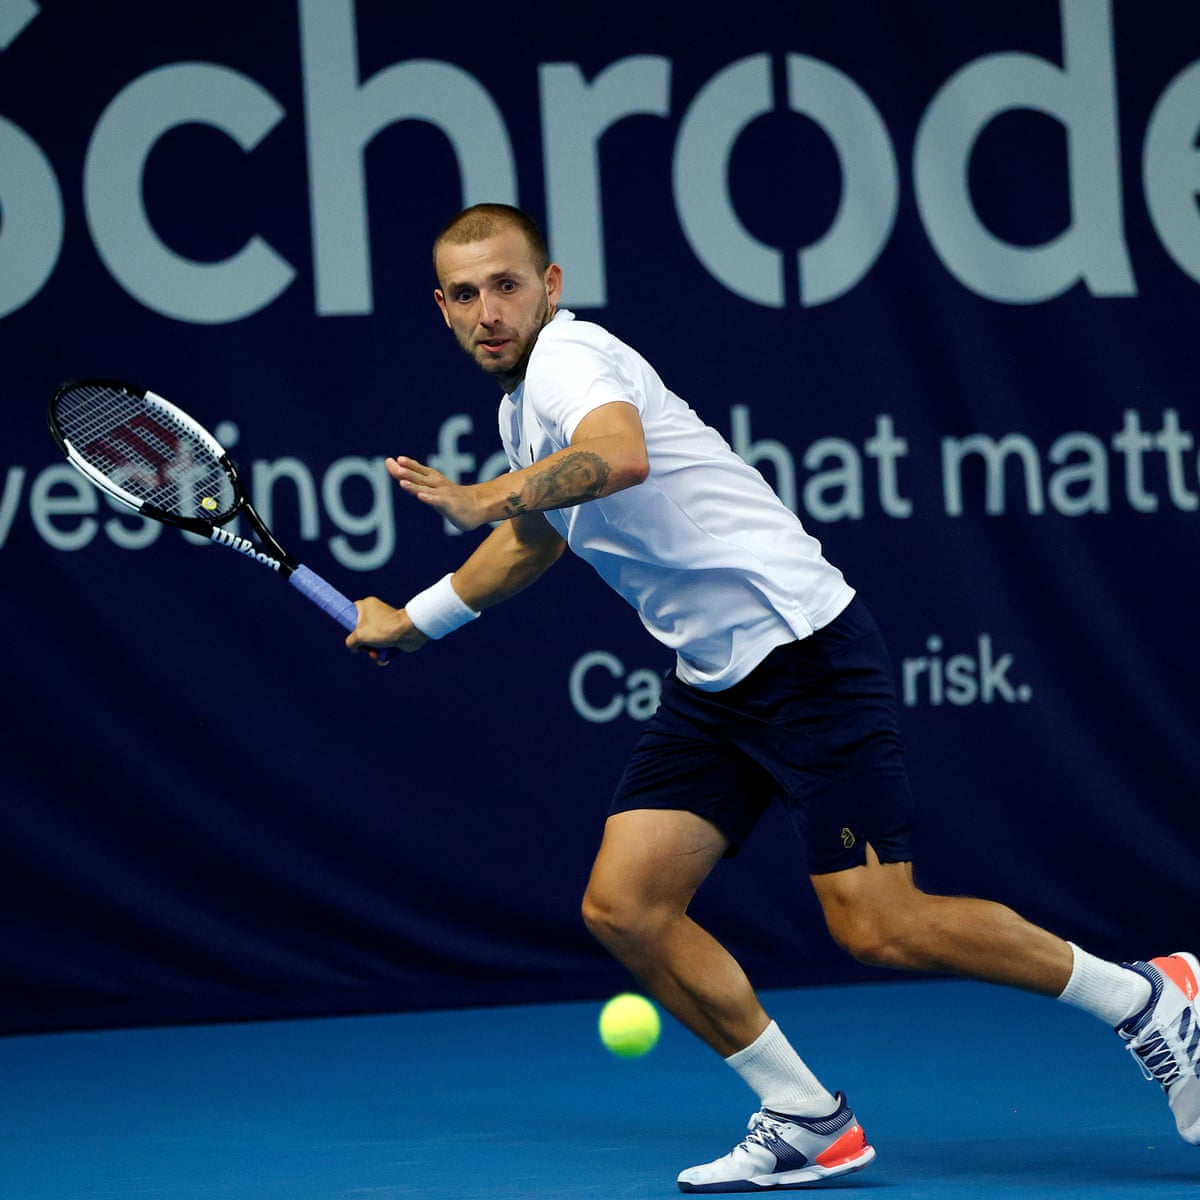 Dan Evans bounces back against Andy Murray to reach Battle of the Brits  final | Tennis